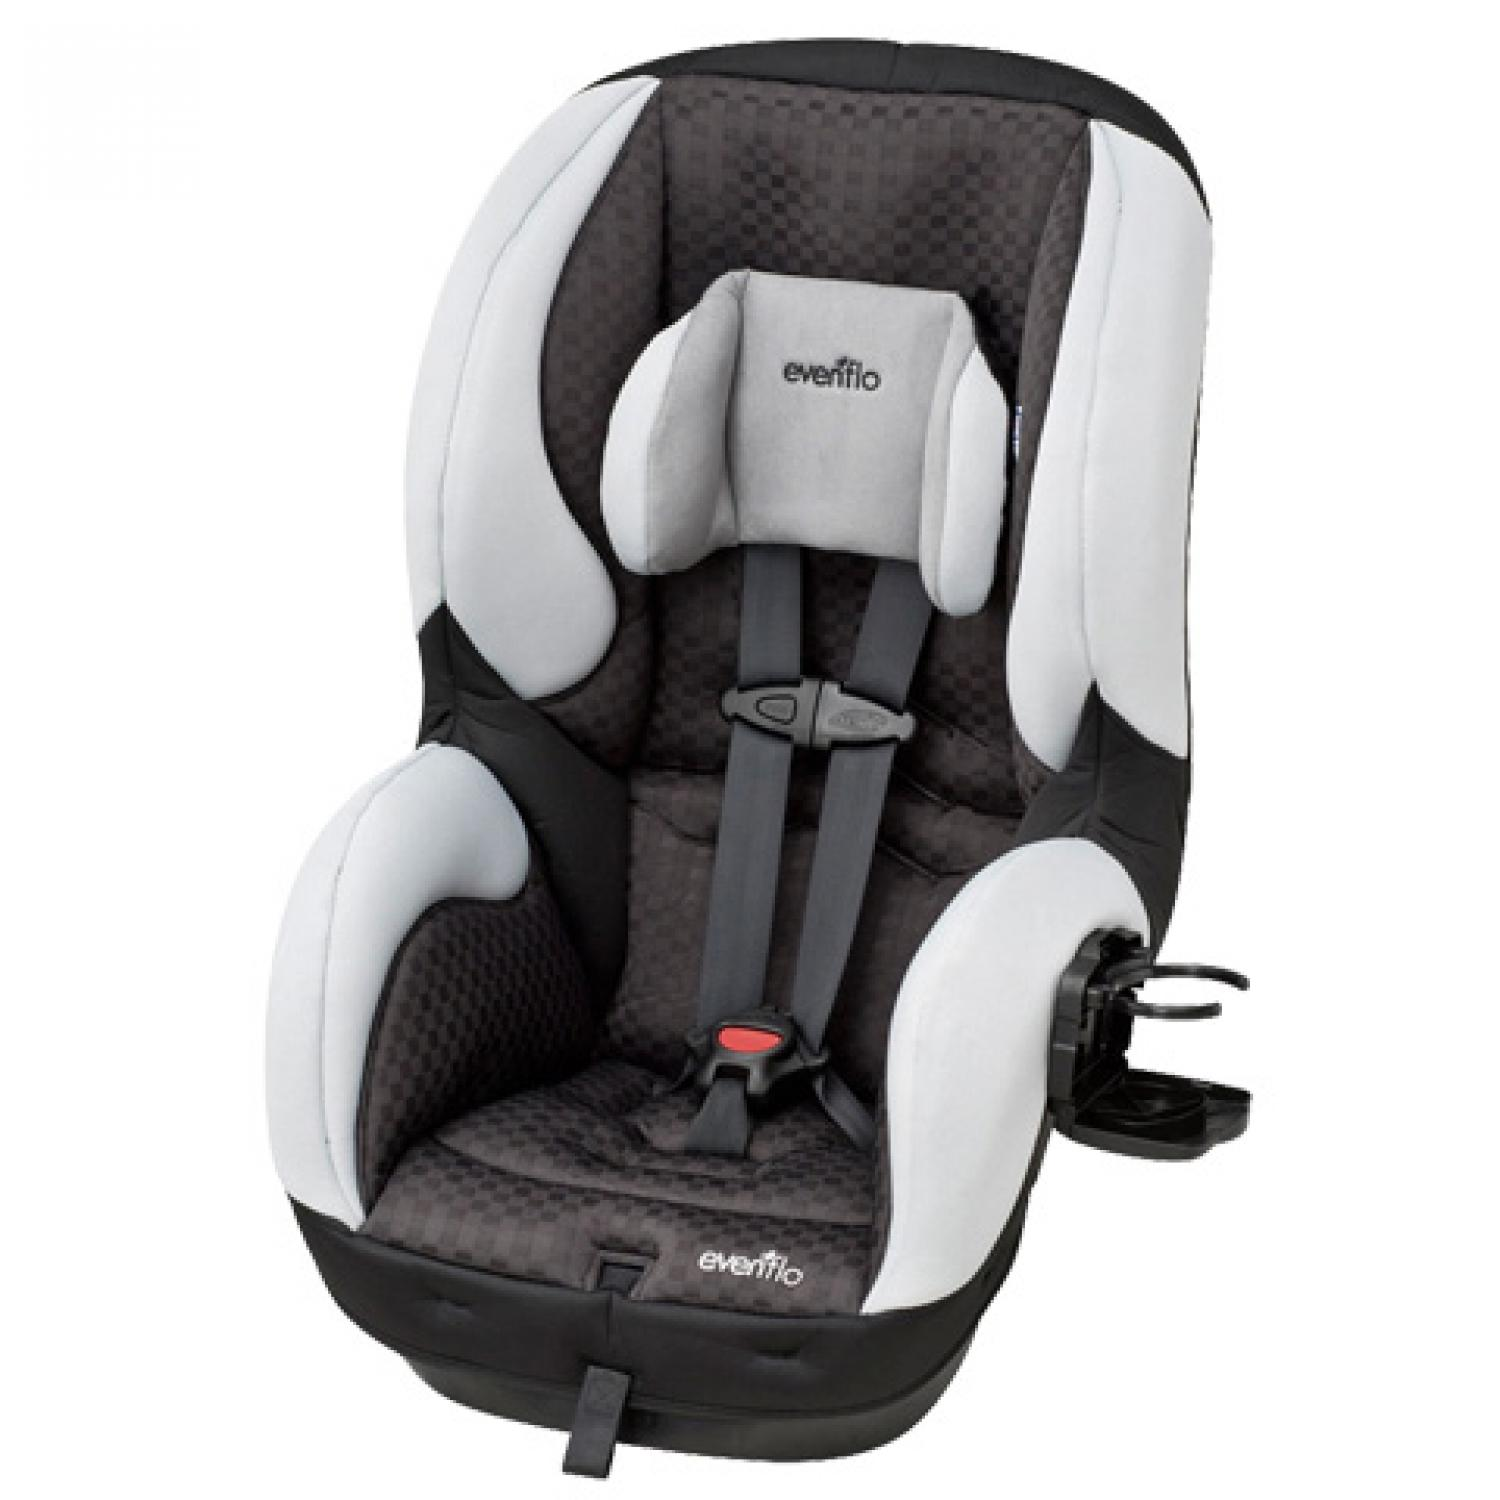 nearly 1 3 million evenflo car seat buckles recalled parenting. Black Bedroom Furniture Sets. Home Design Ideas